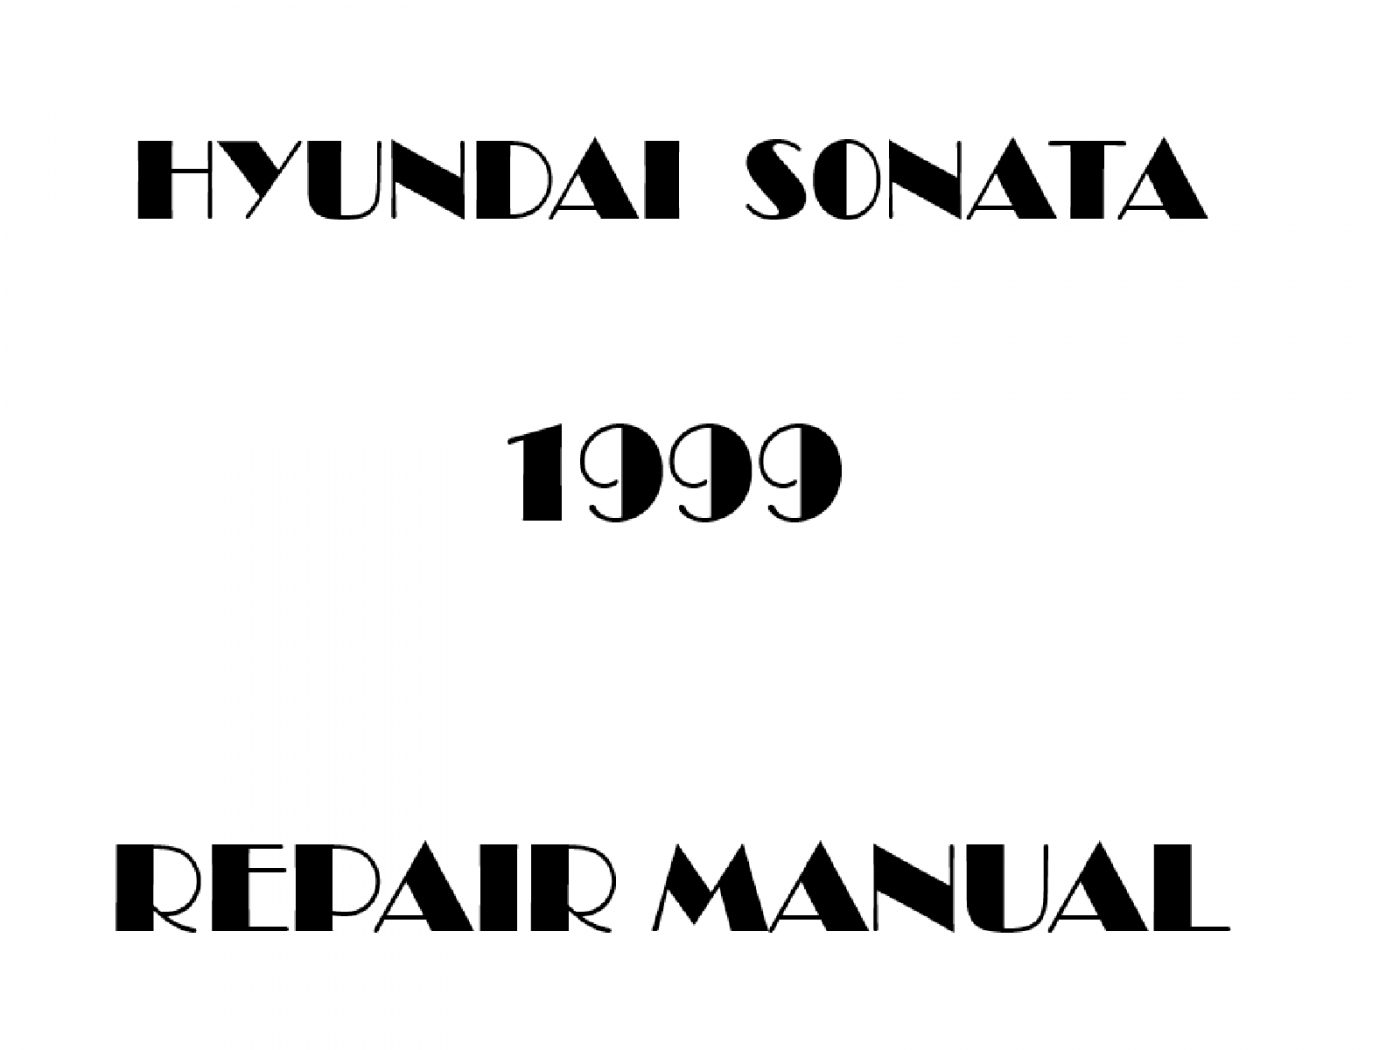 1999 Hyundai Sonata repair manual